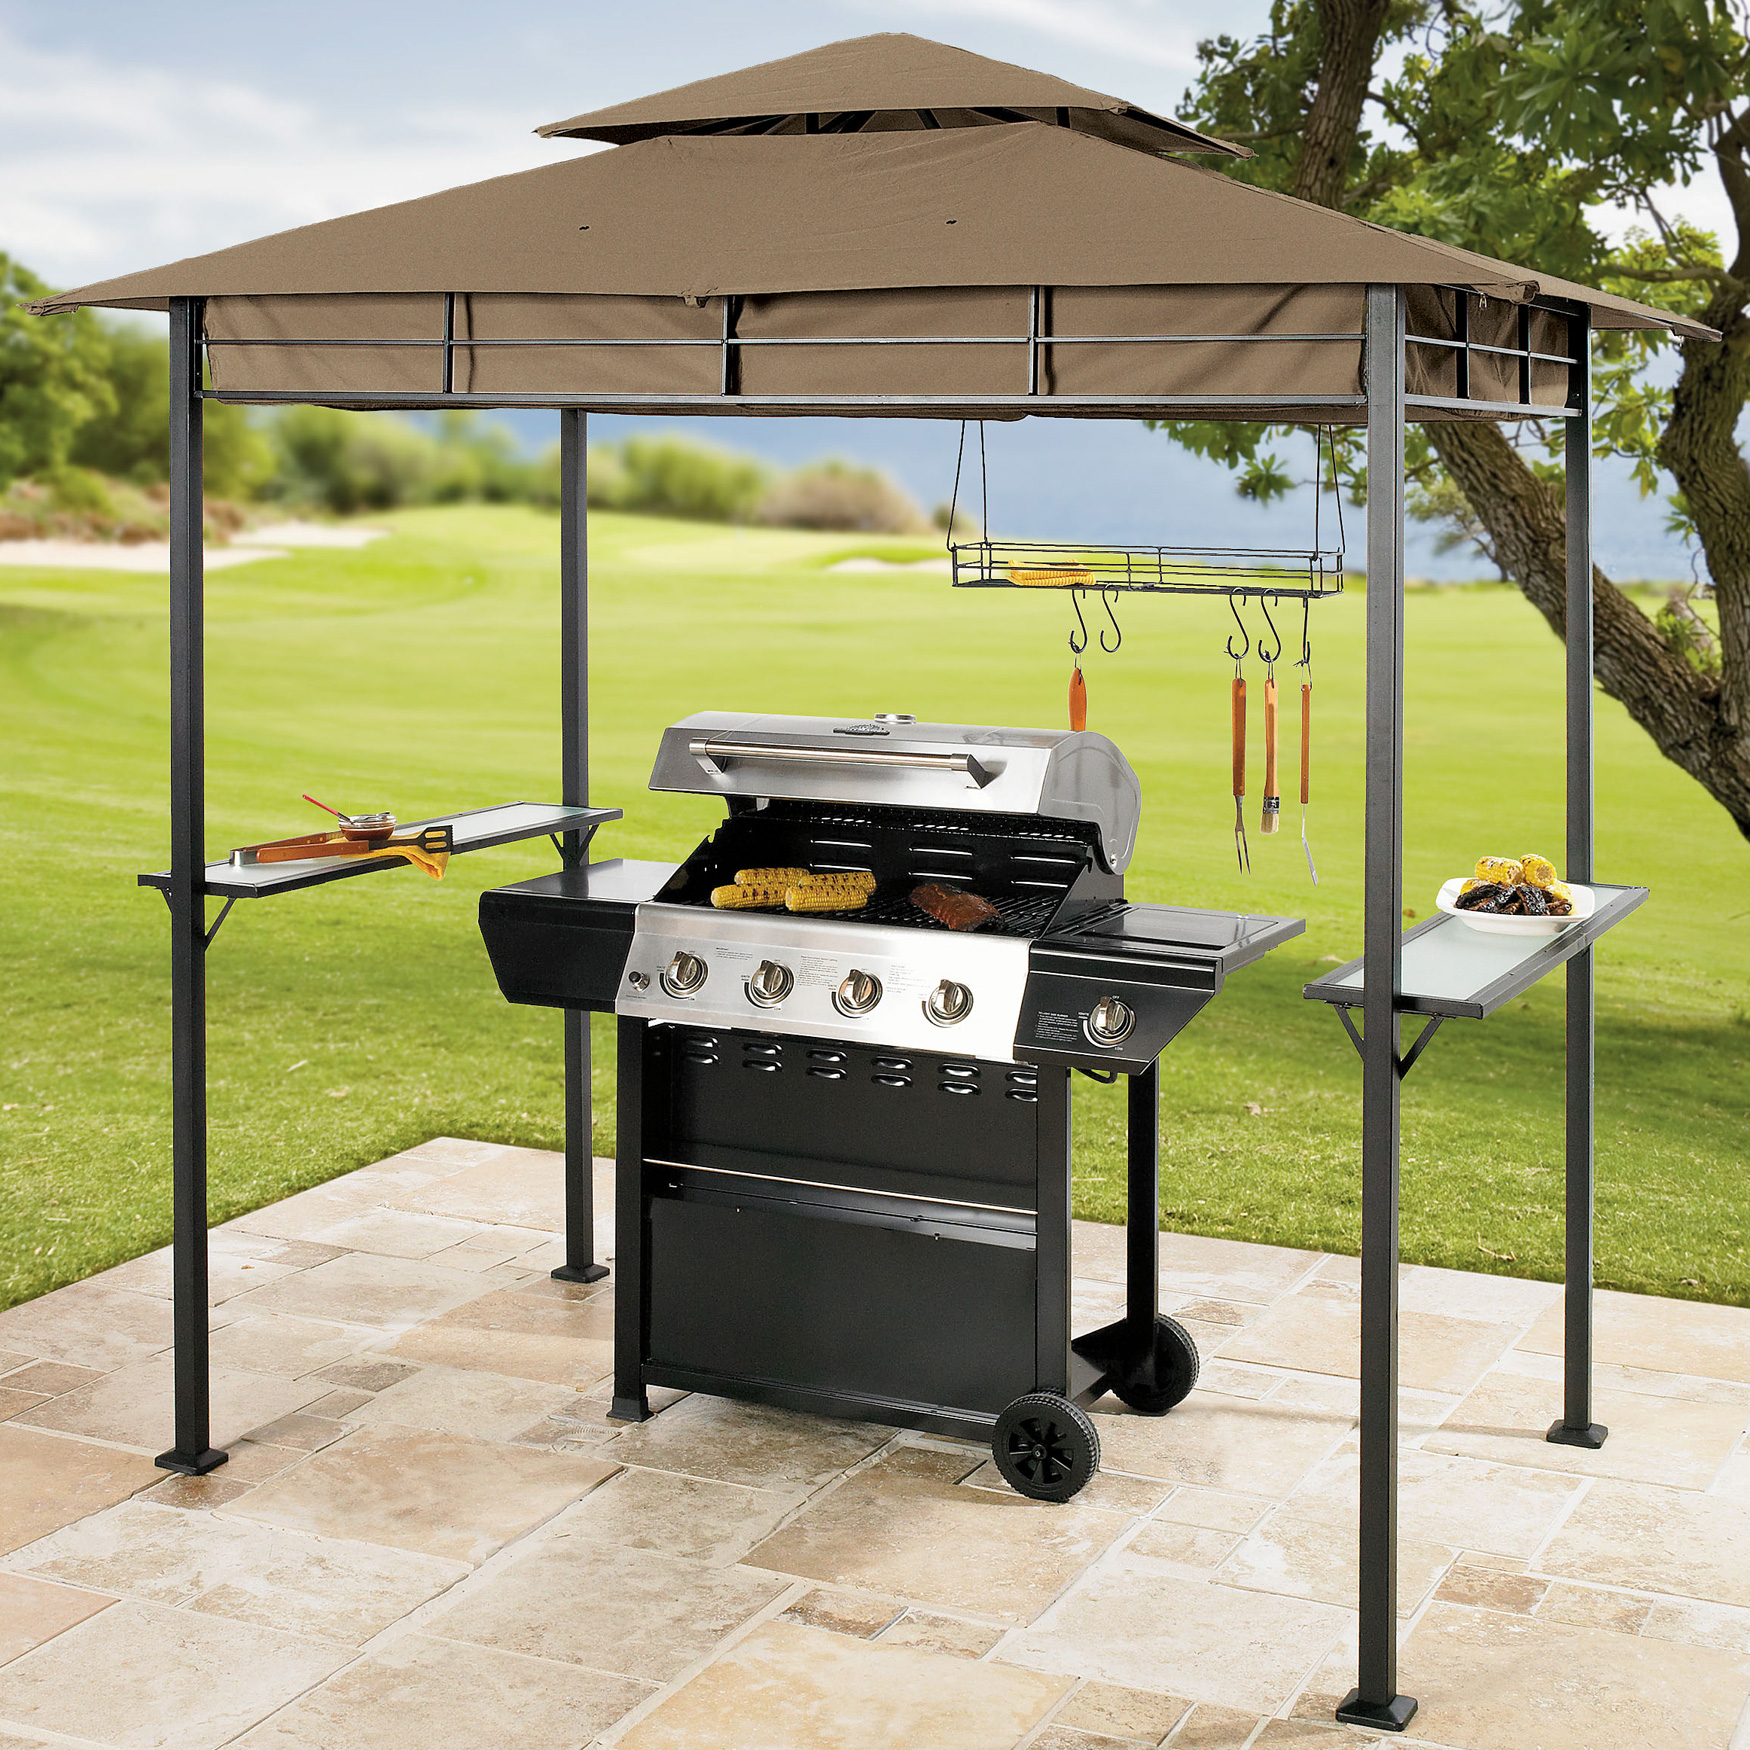 Features of grill gazebos